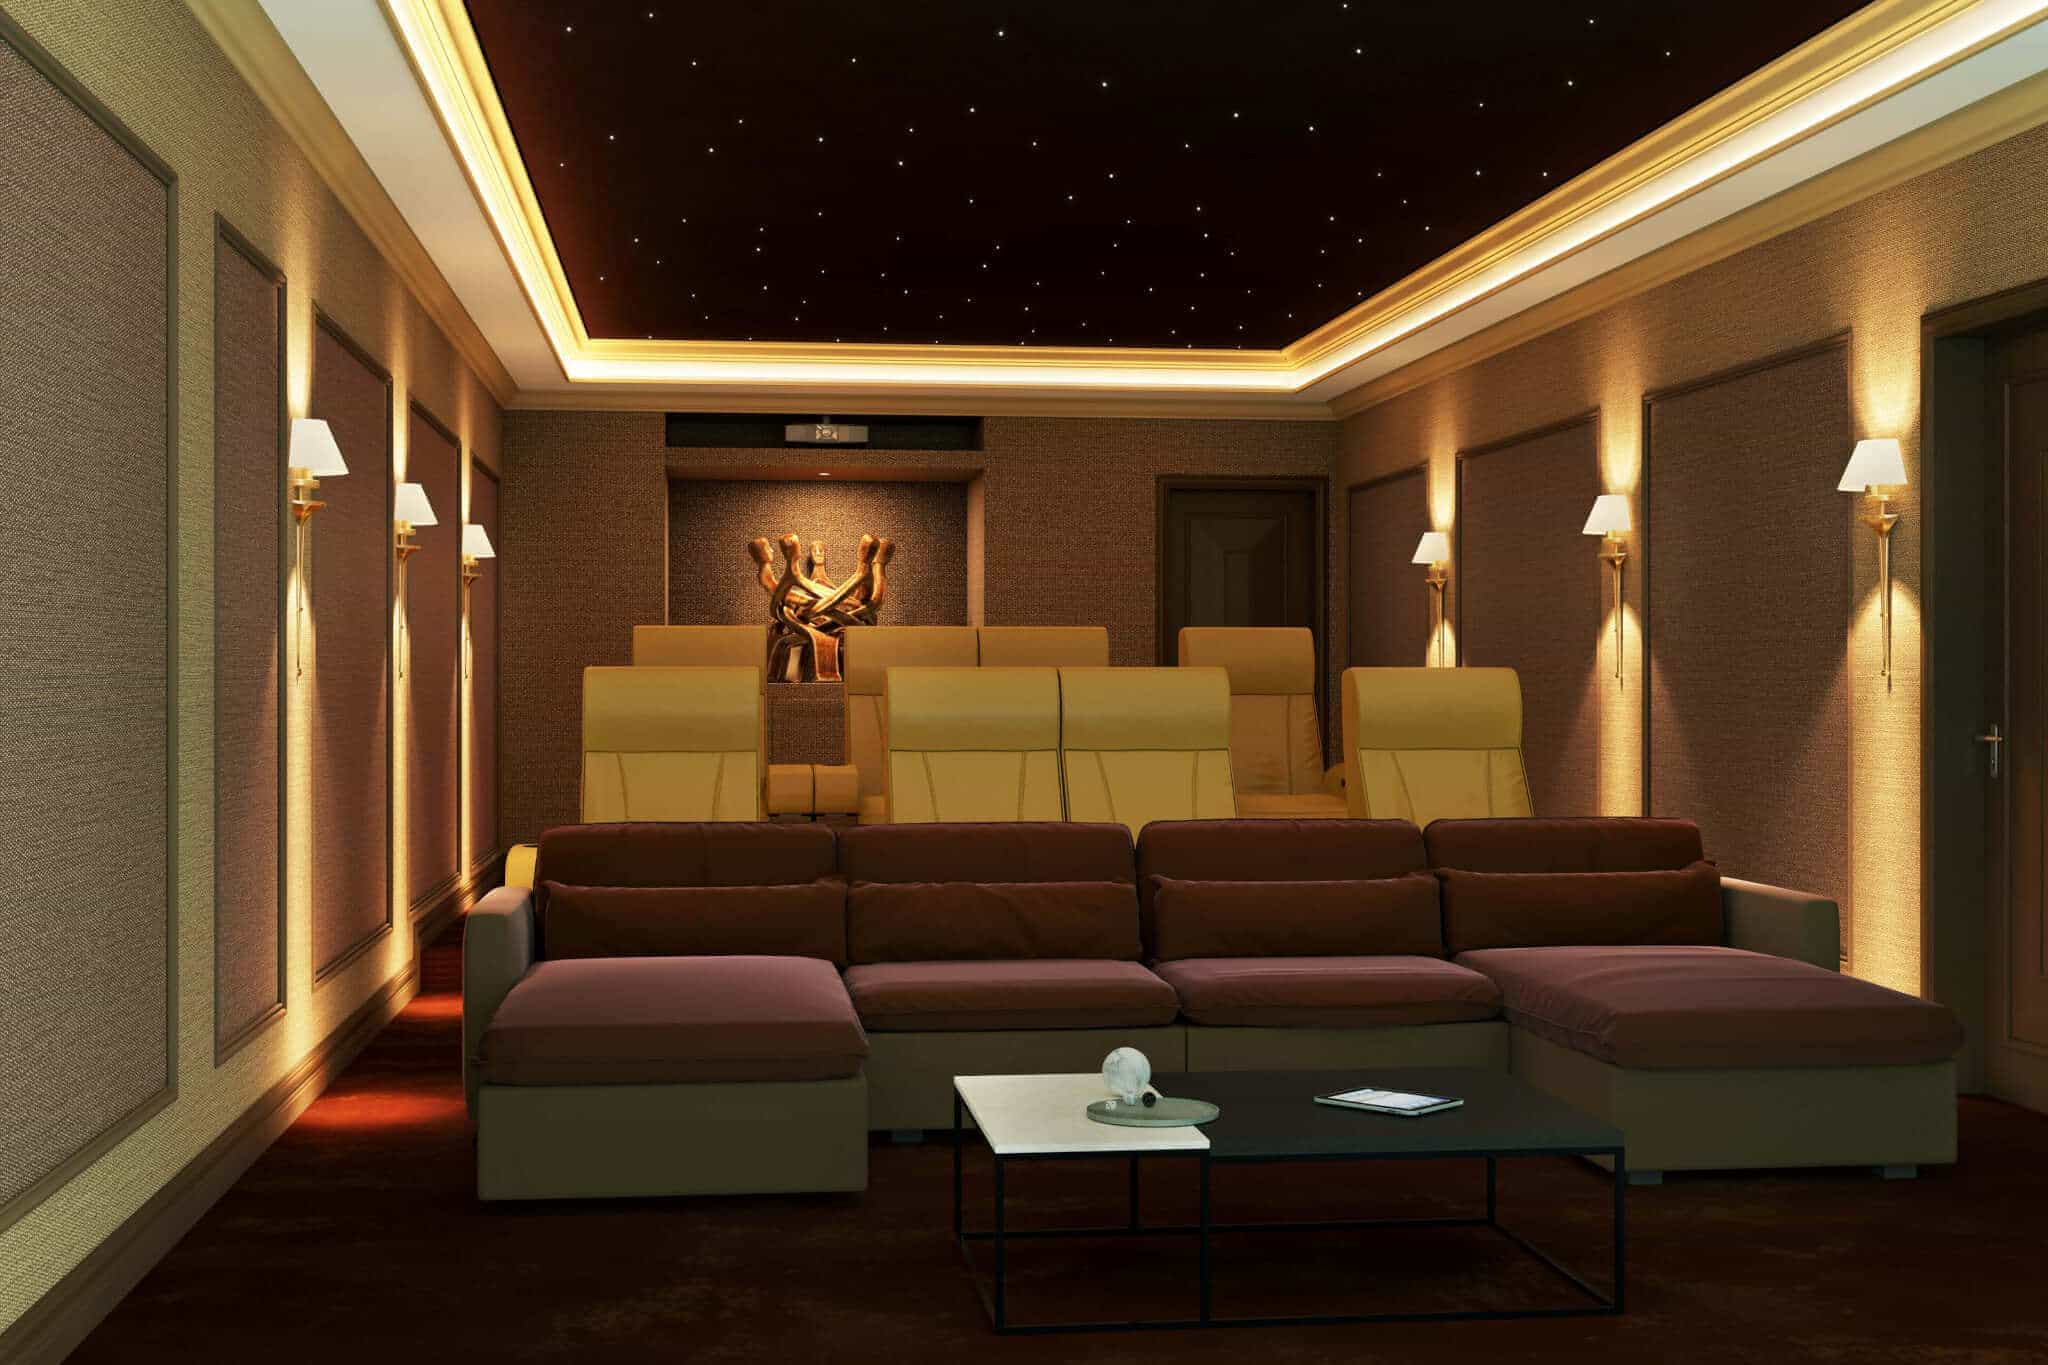 Fabric Wrapped Home Cinema Room